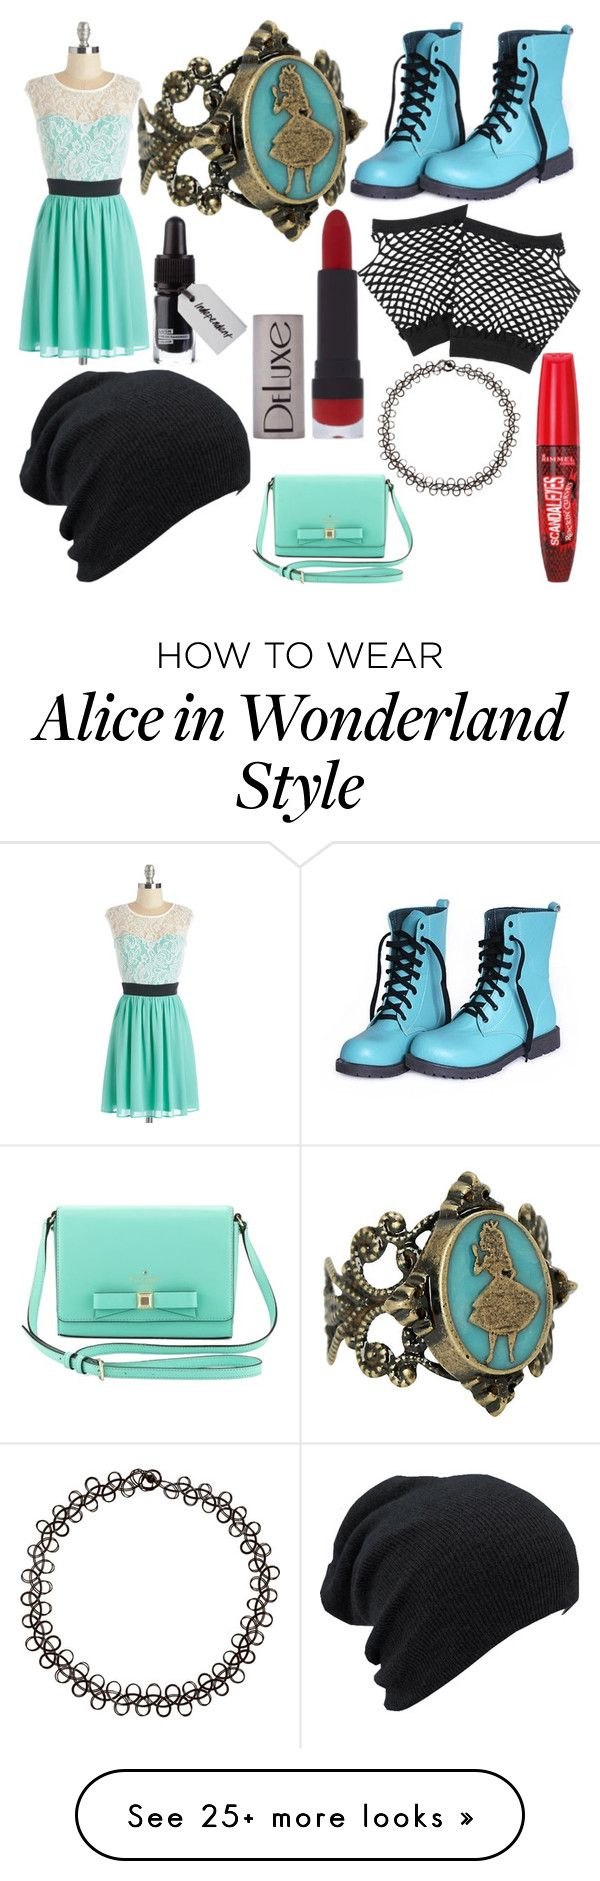 """Untitled #179"" by becca-h-c on Polyvore featuring moda, Disney, Forever 21, Rimmel, H&M y Kate Spade"